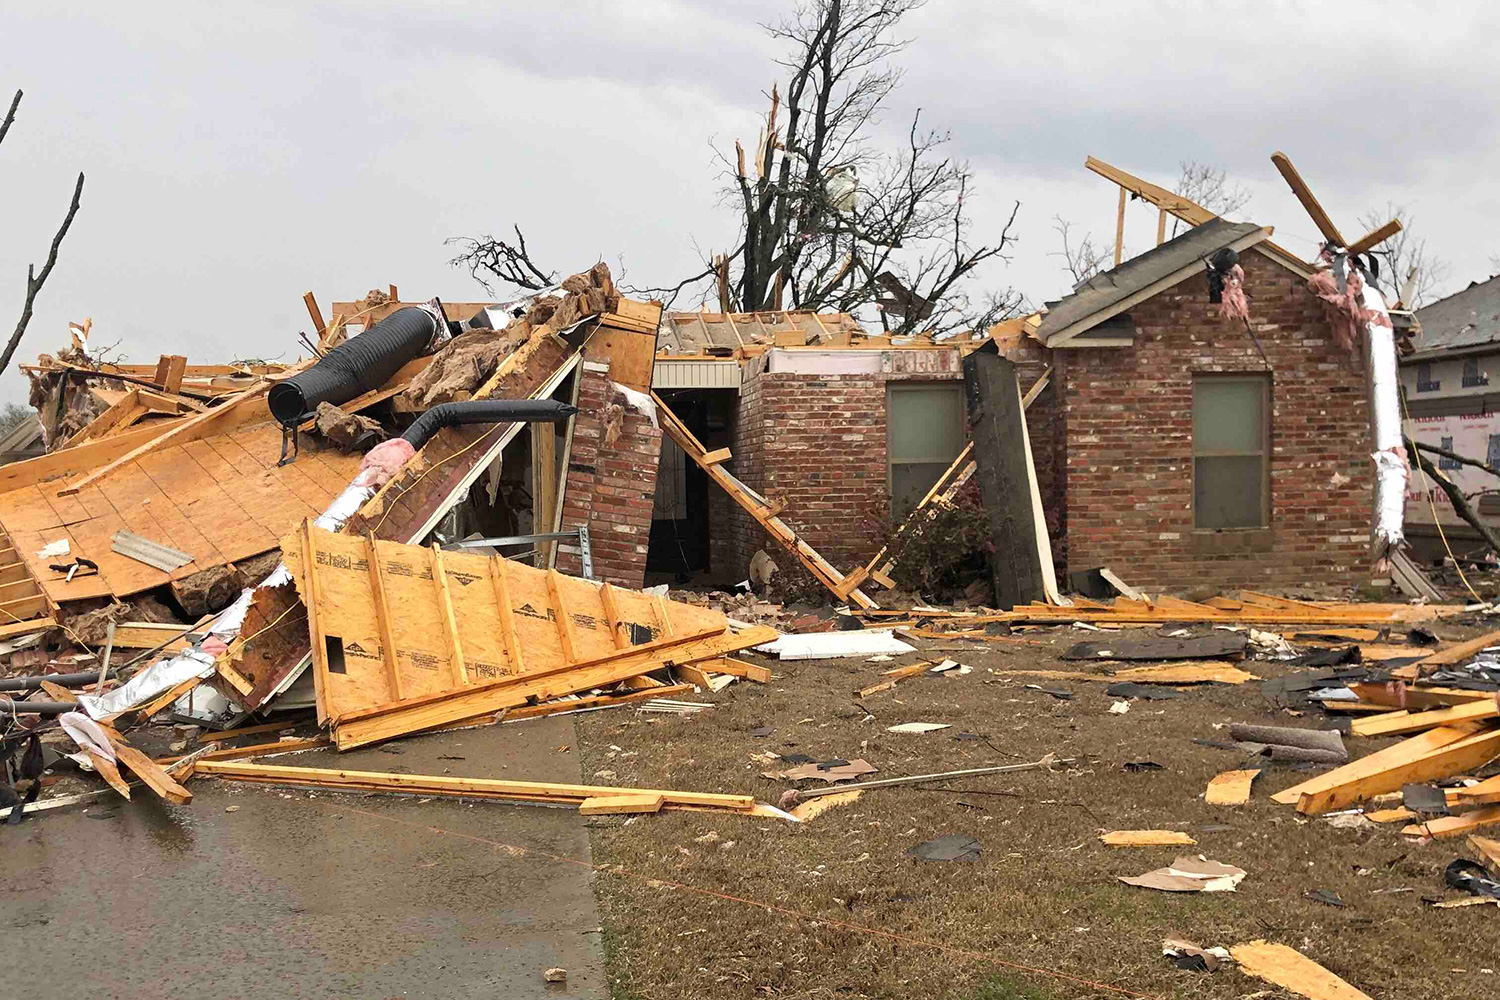 Burks Family Home Destroyed in Tornado